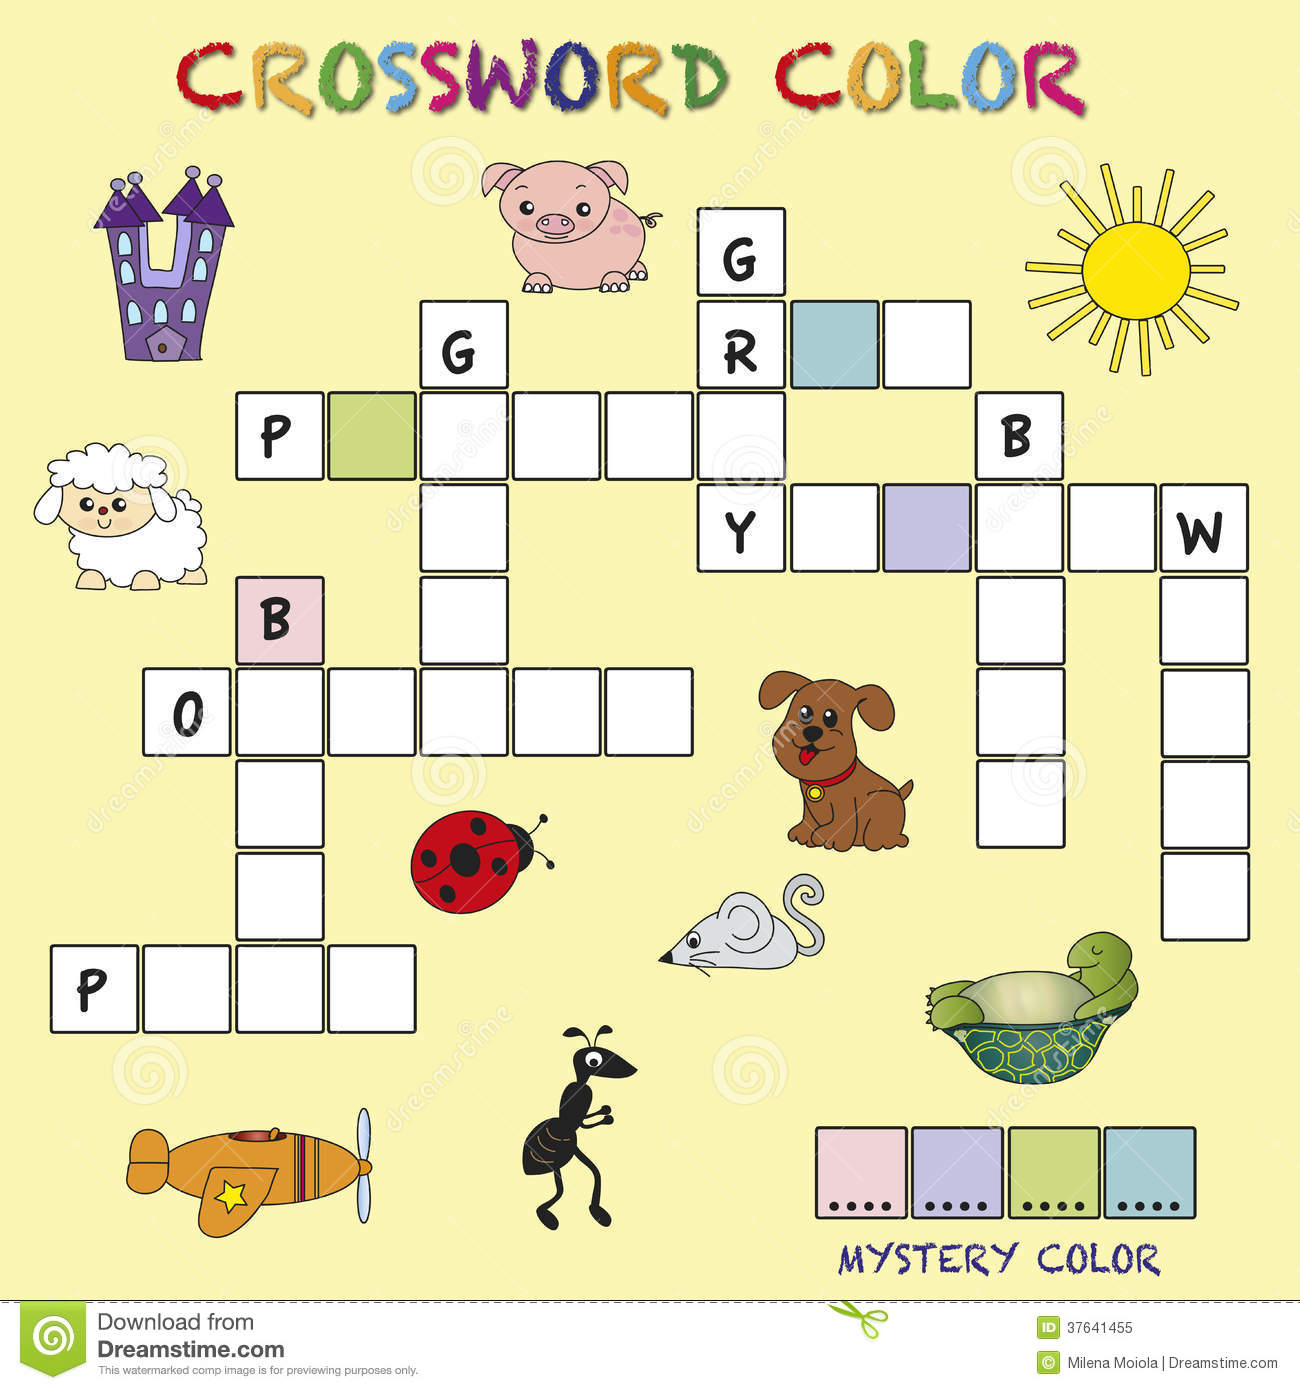 Crossword Color Royalty Free Stock Photo